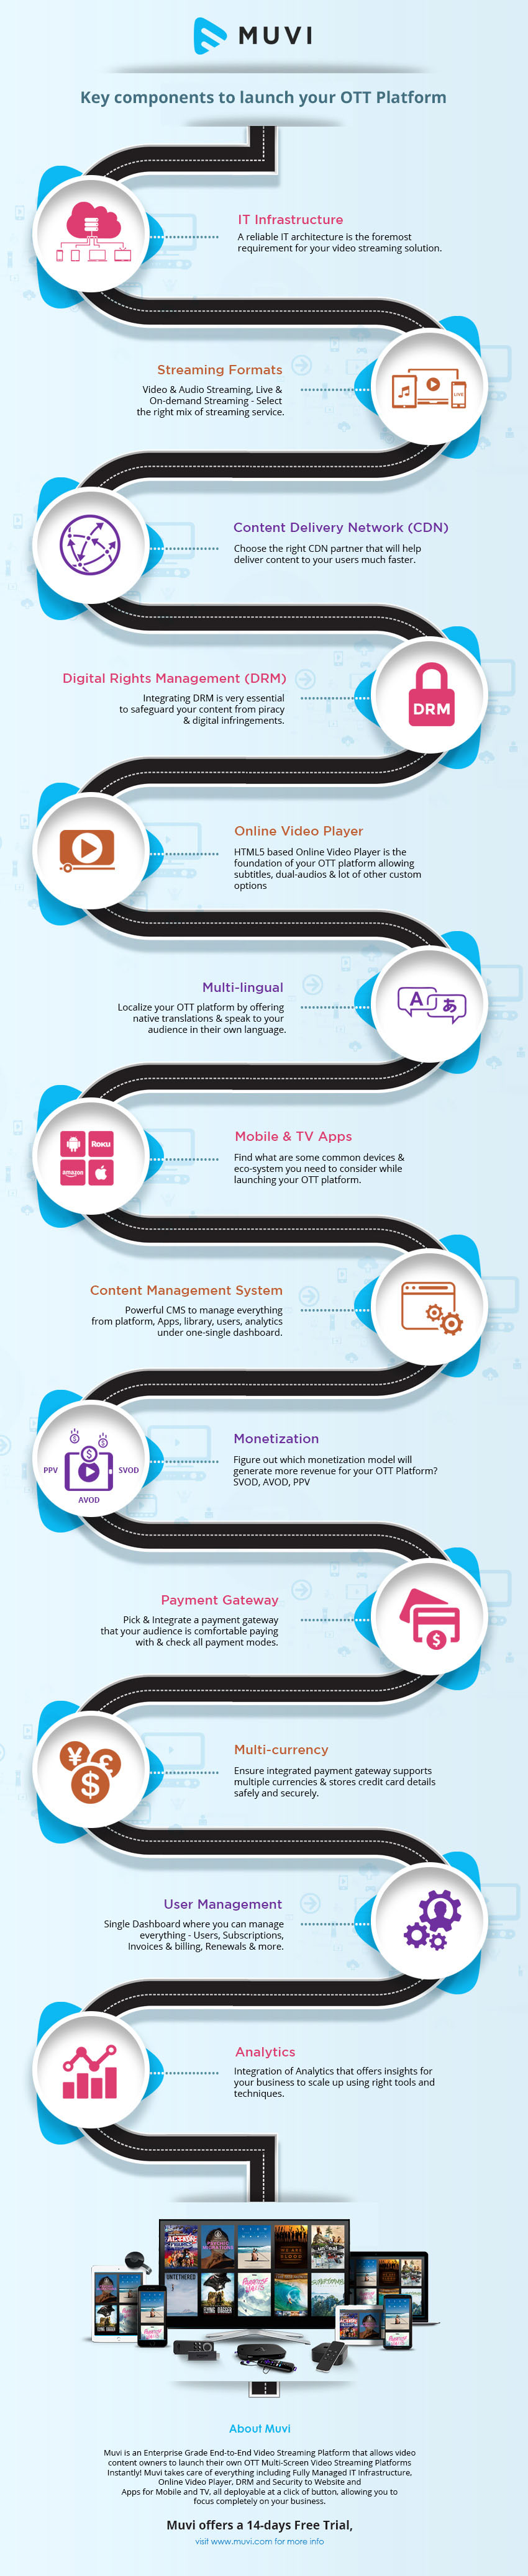 Infographic: Key components to launch your OTT platform.